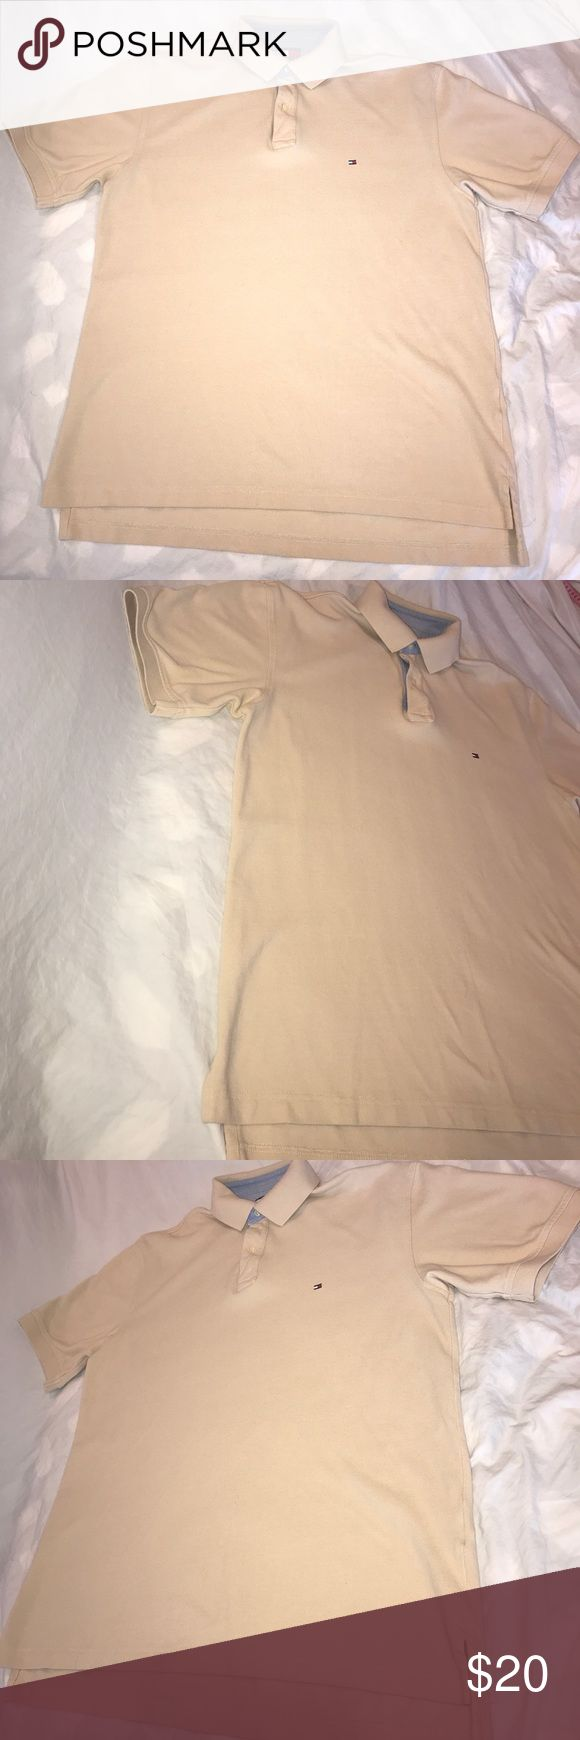 Tommy Hilfiger Pique Polo Shirt Size L Great casual Pique Polo Shirt by Tommy Hilfiger in a tan beige. It is in great pre-owned condition. Size is large. Tommy Hilfiger Shirts Polos